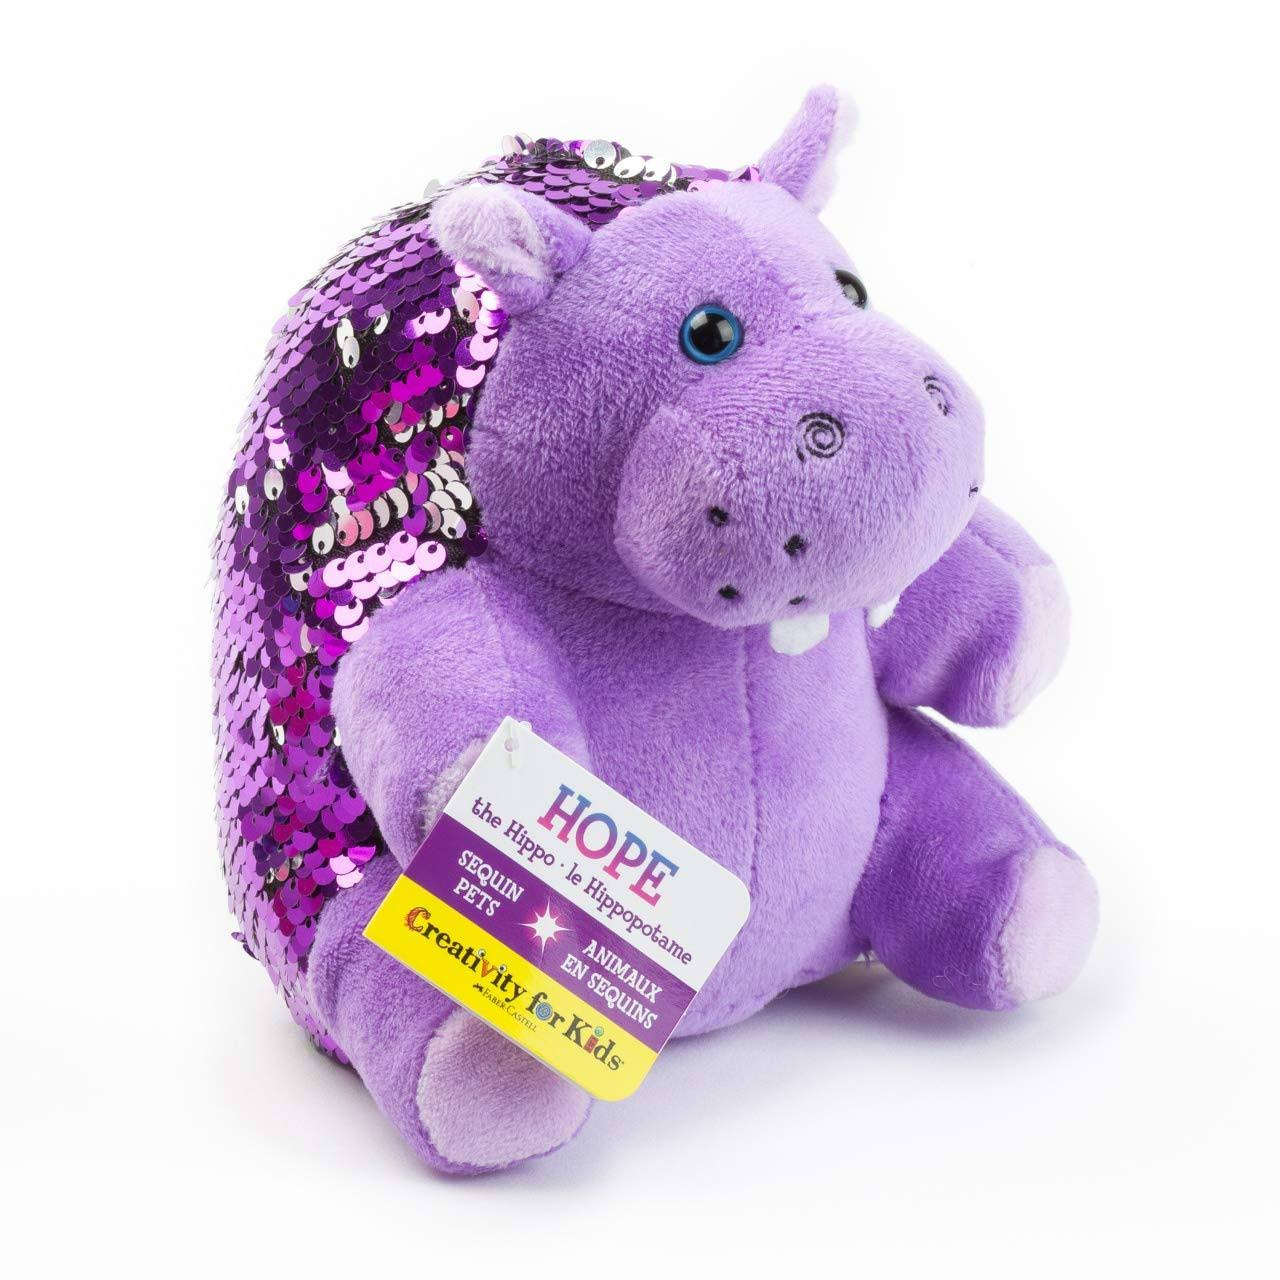 Creativity for Kids Mini Sequin Pets: Hope The Hippo